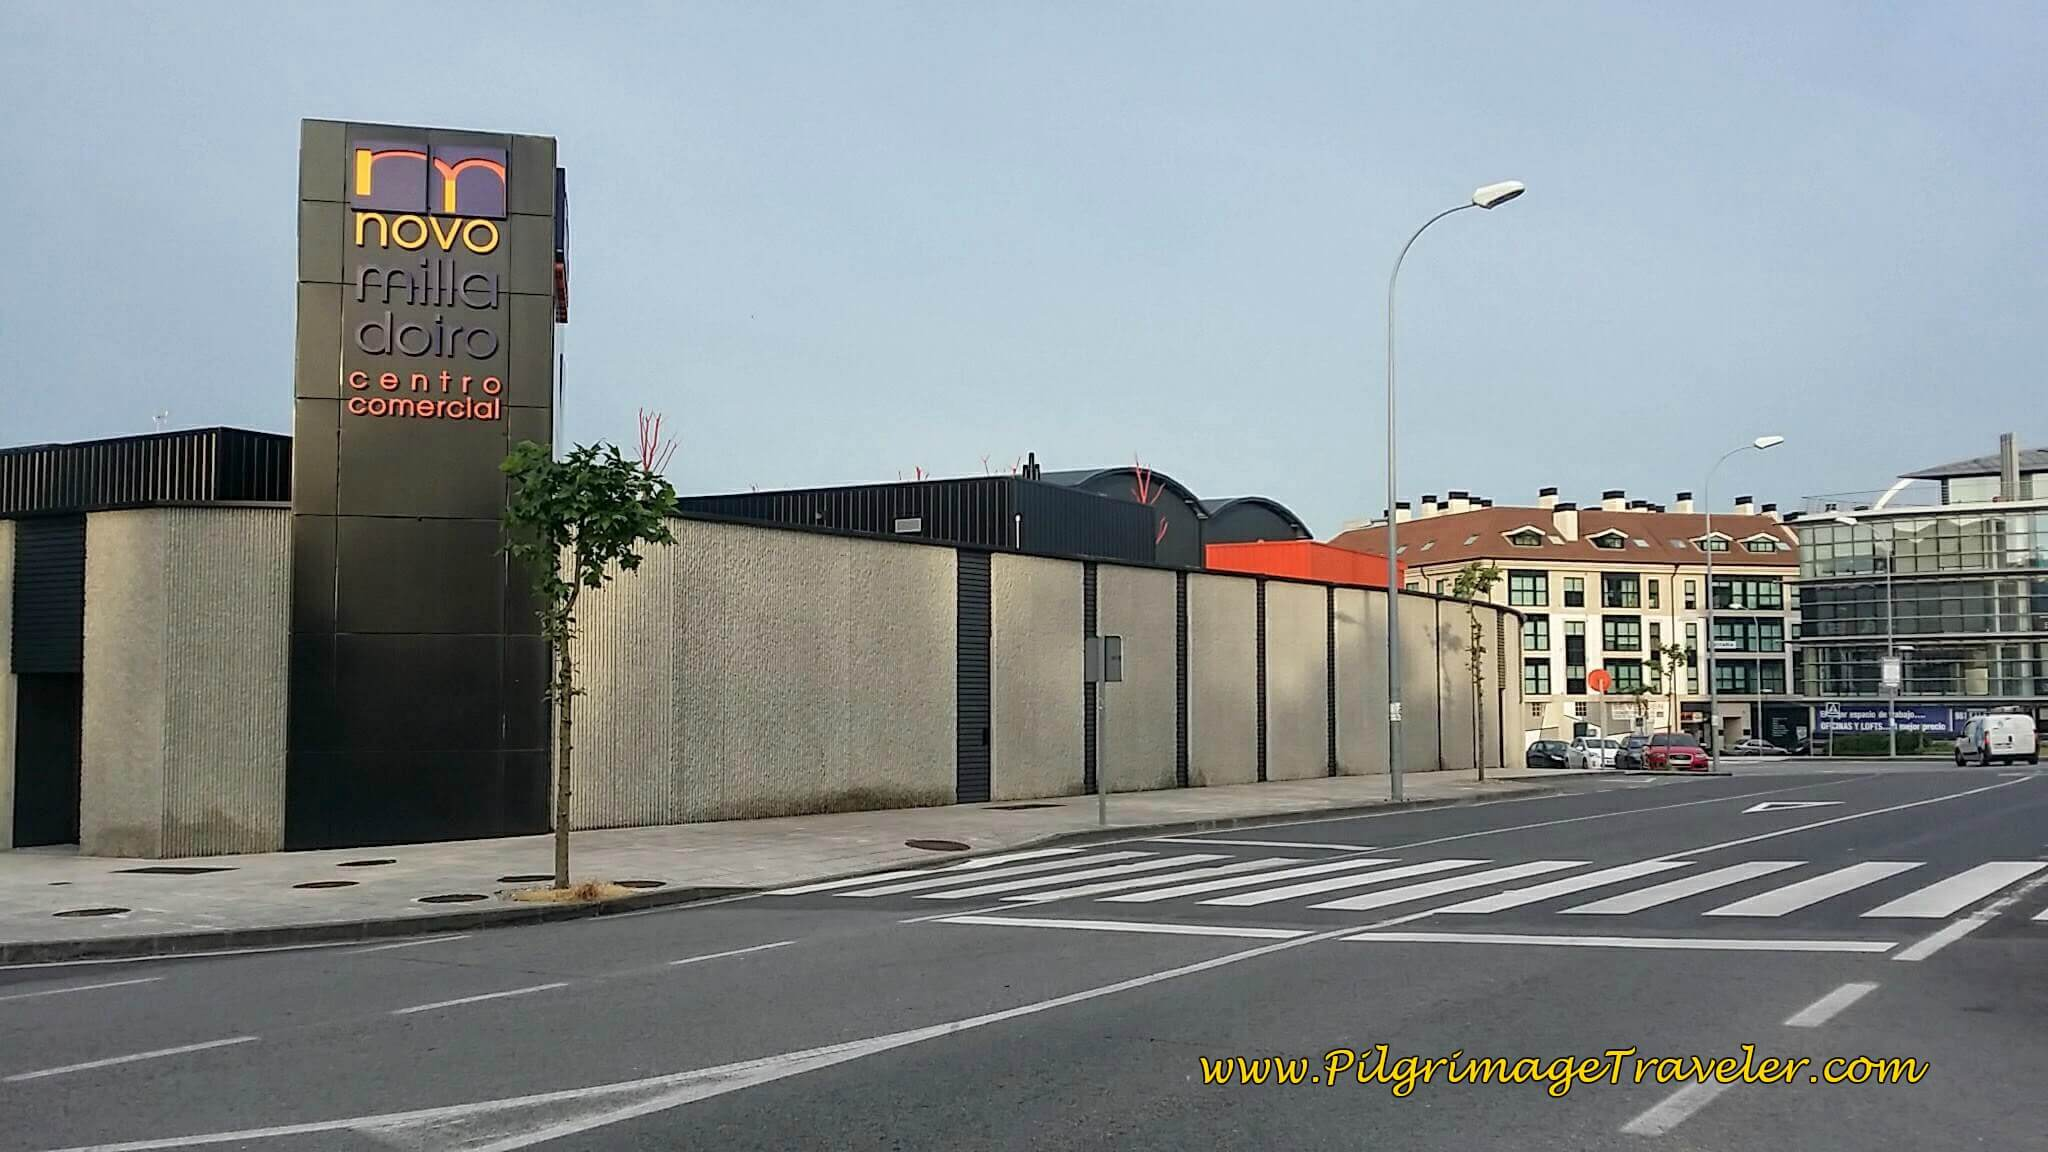 Look for Path Across From the Novo Milladoiro Commercial Center on day twenty-five of the Camino Portugués